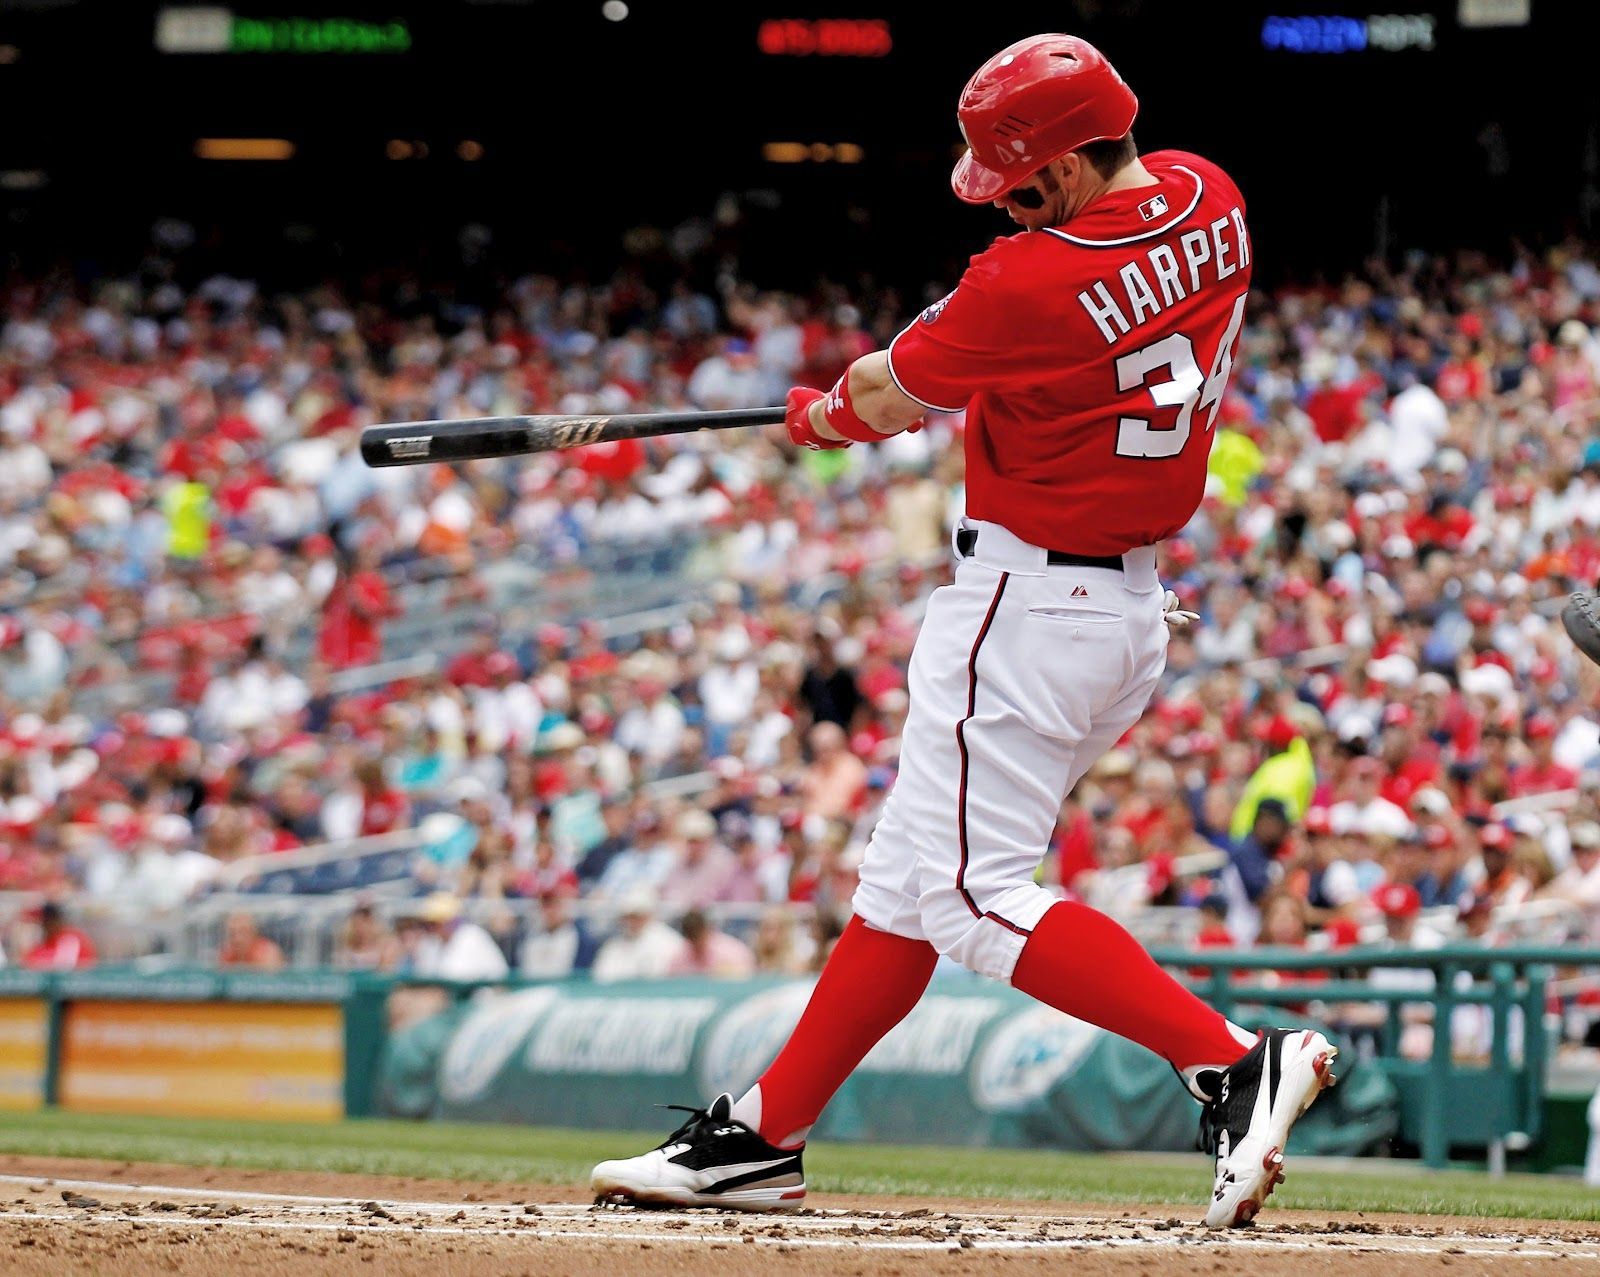 Bryce Harper Is The Right Fielder For The Washington